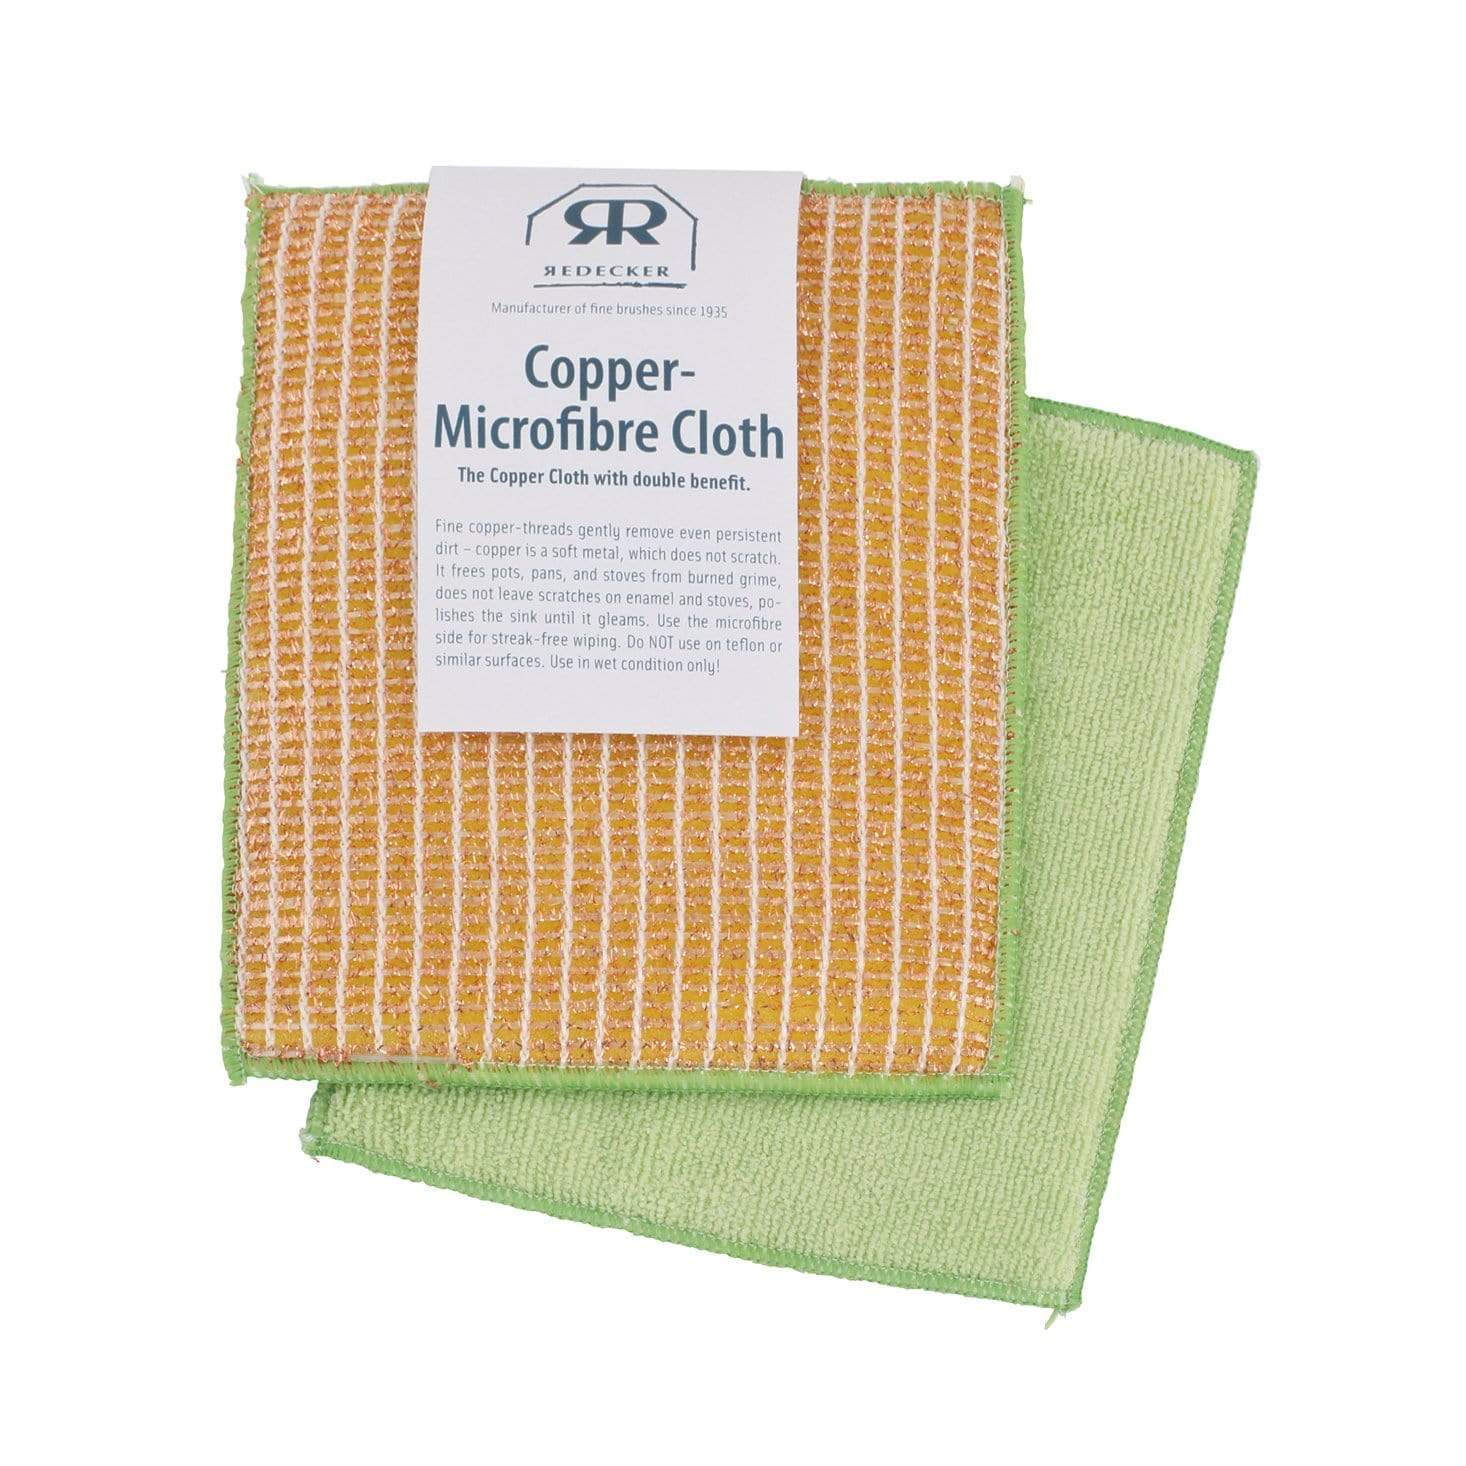 Redecker Copper Microfibre Cloth